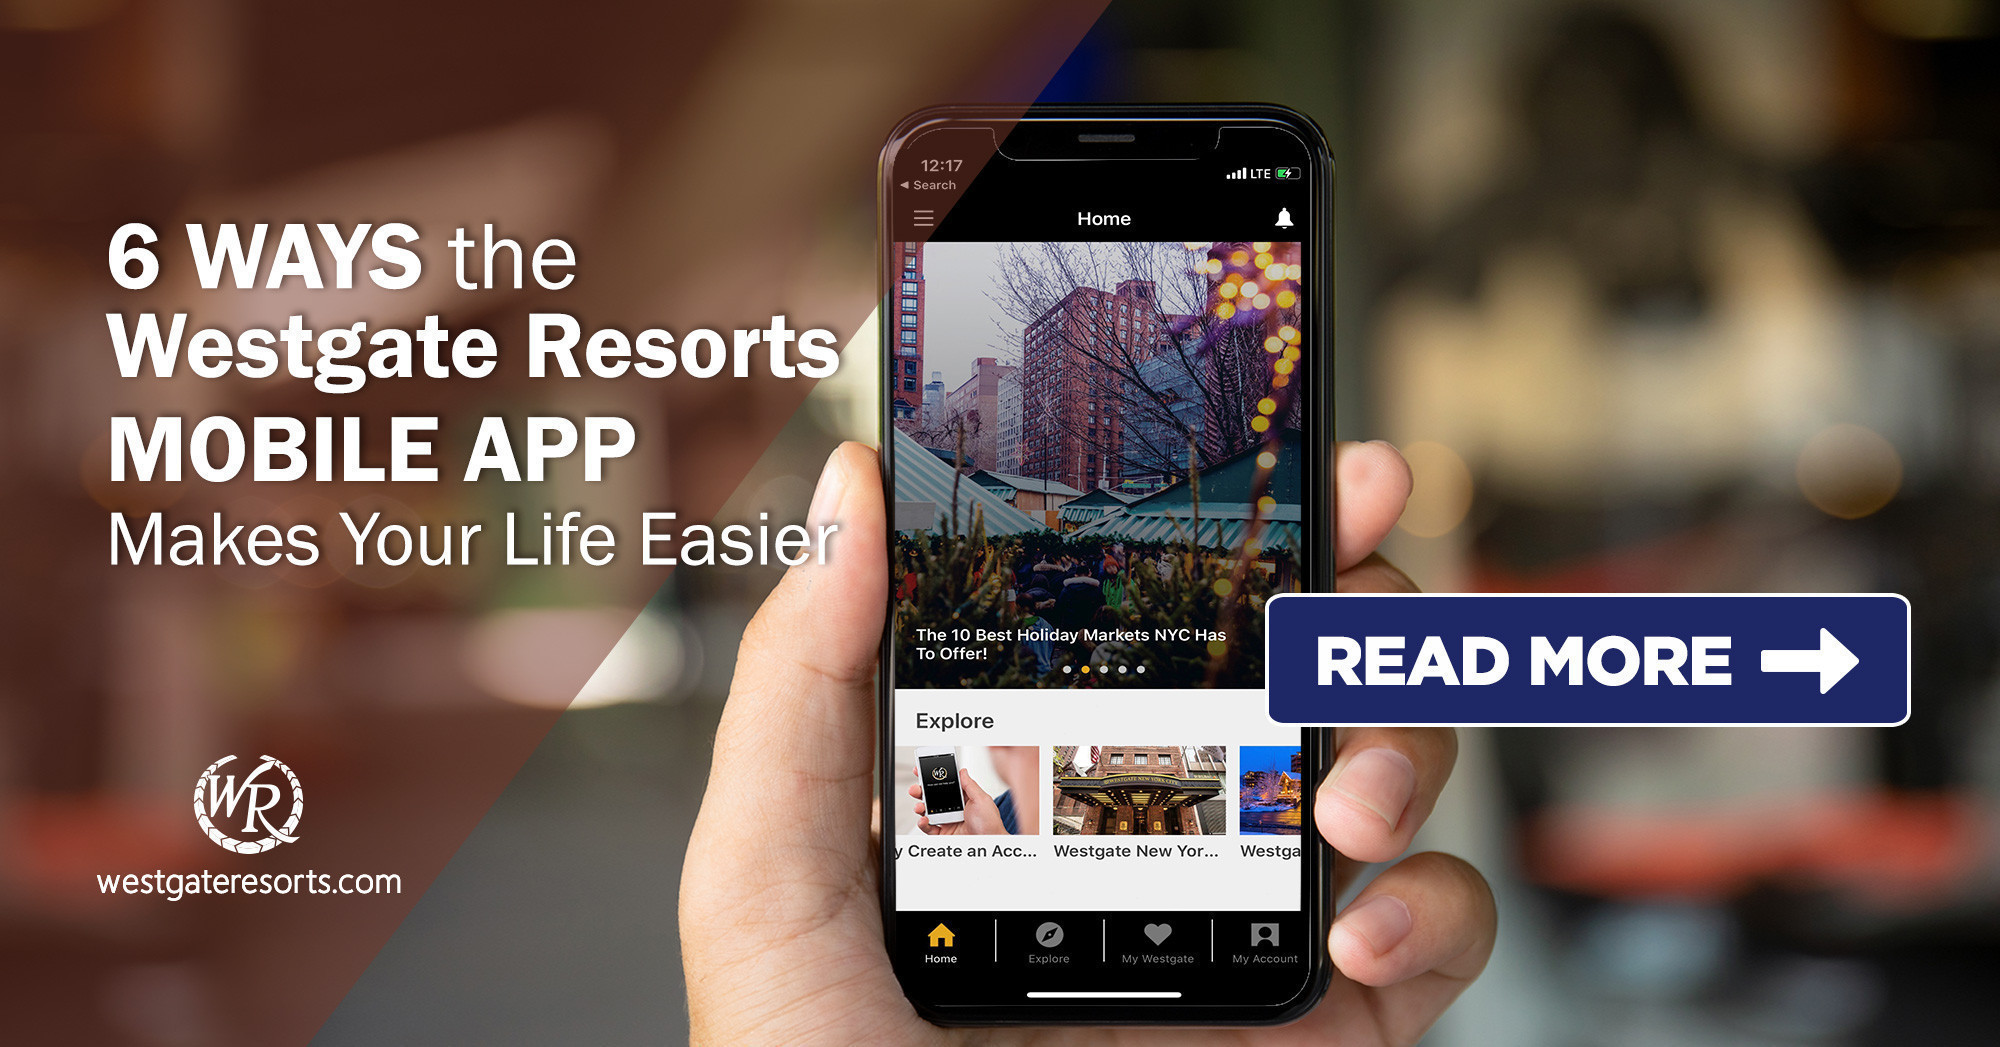 6 Ways the Westgate Resorts Mobile App Makes Your Life Easier